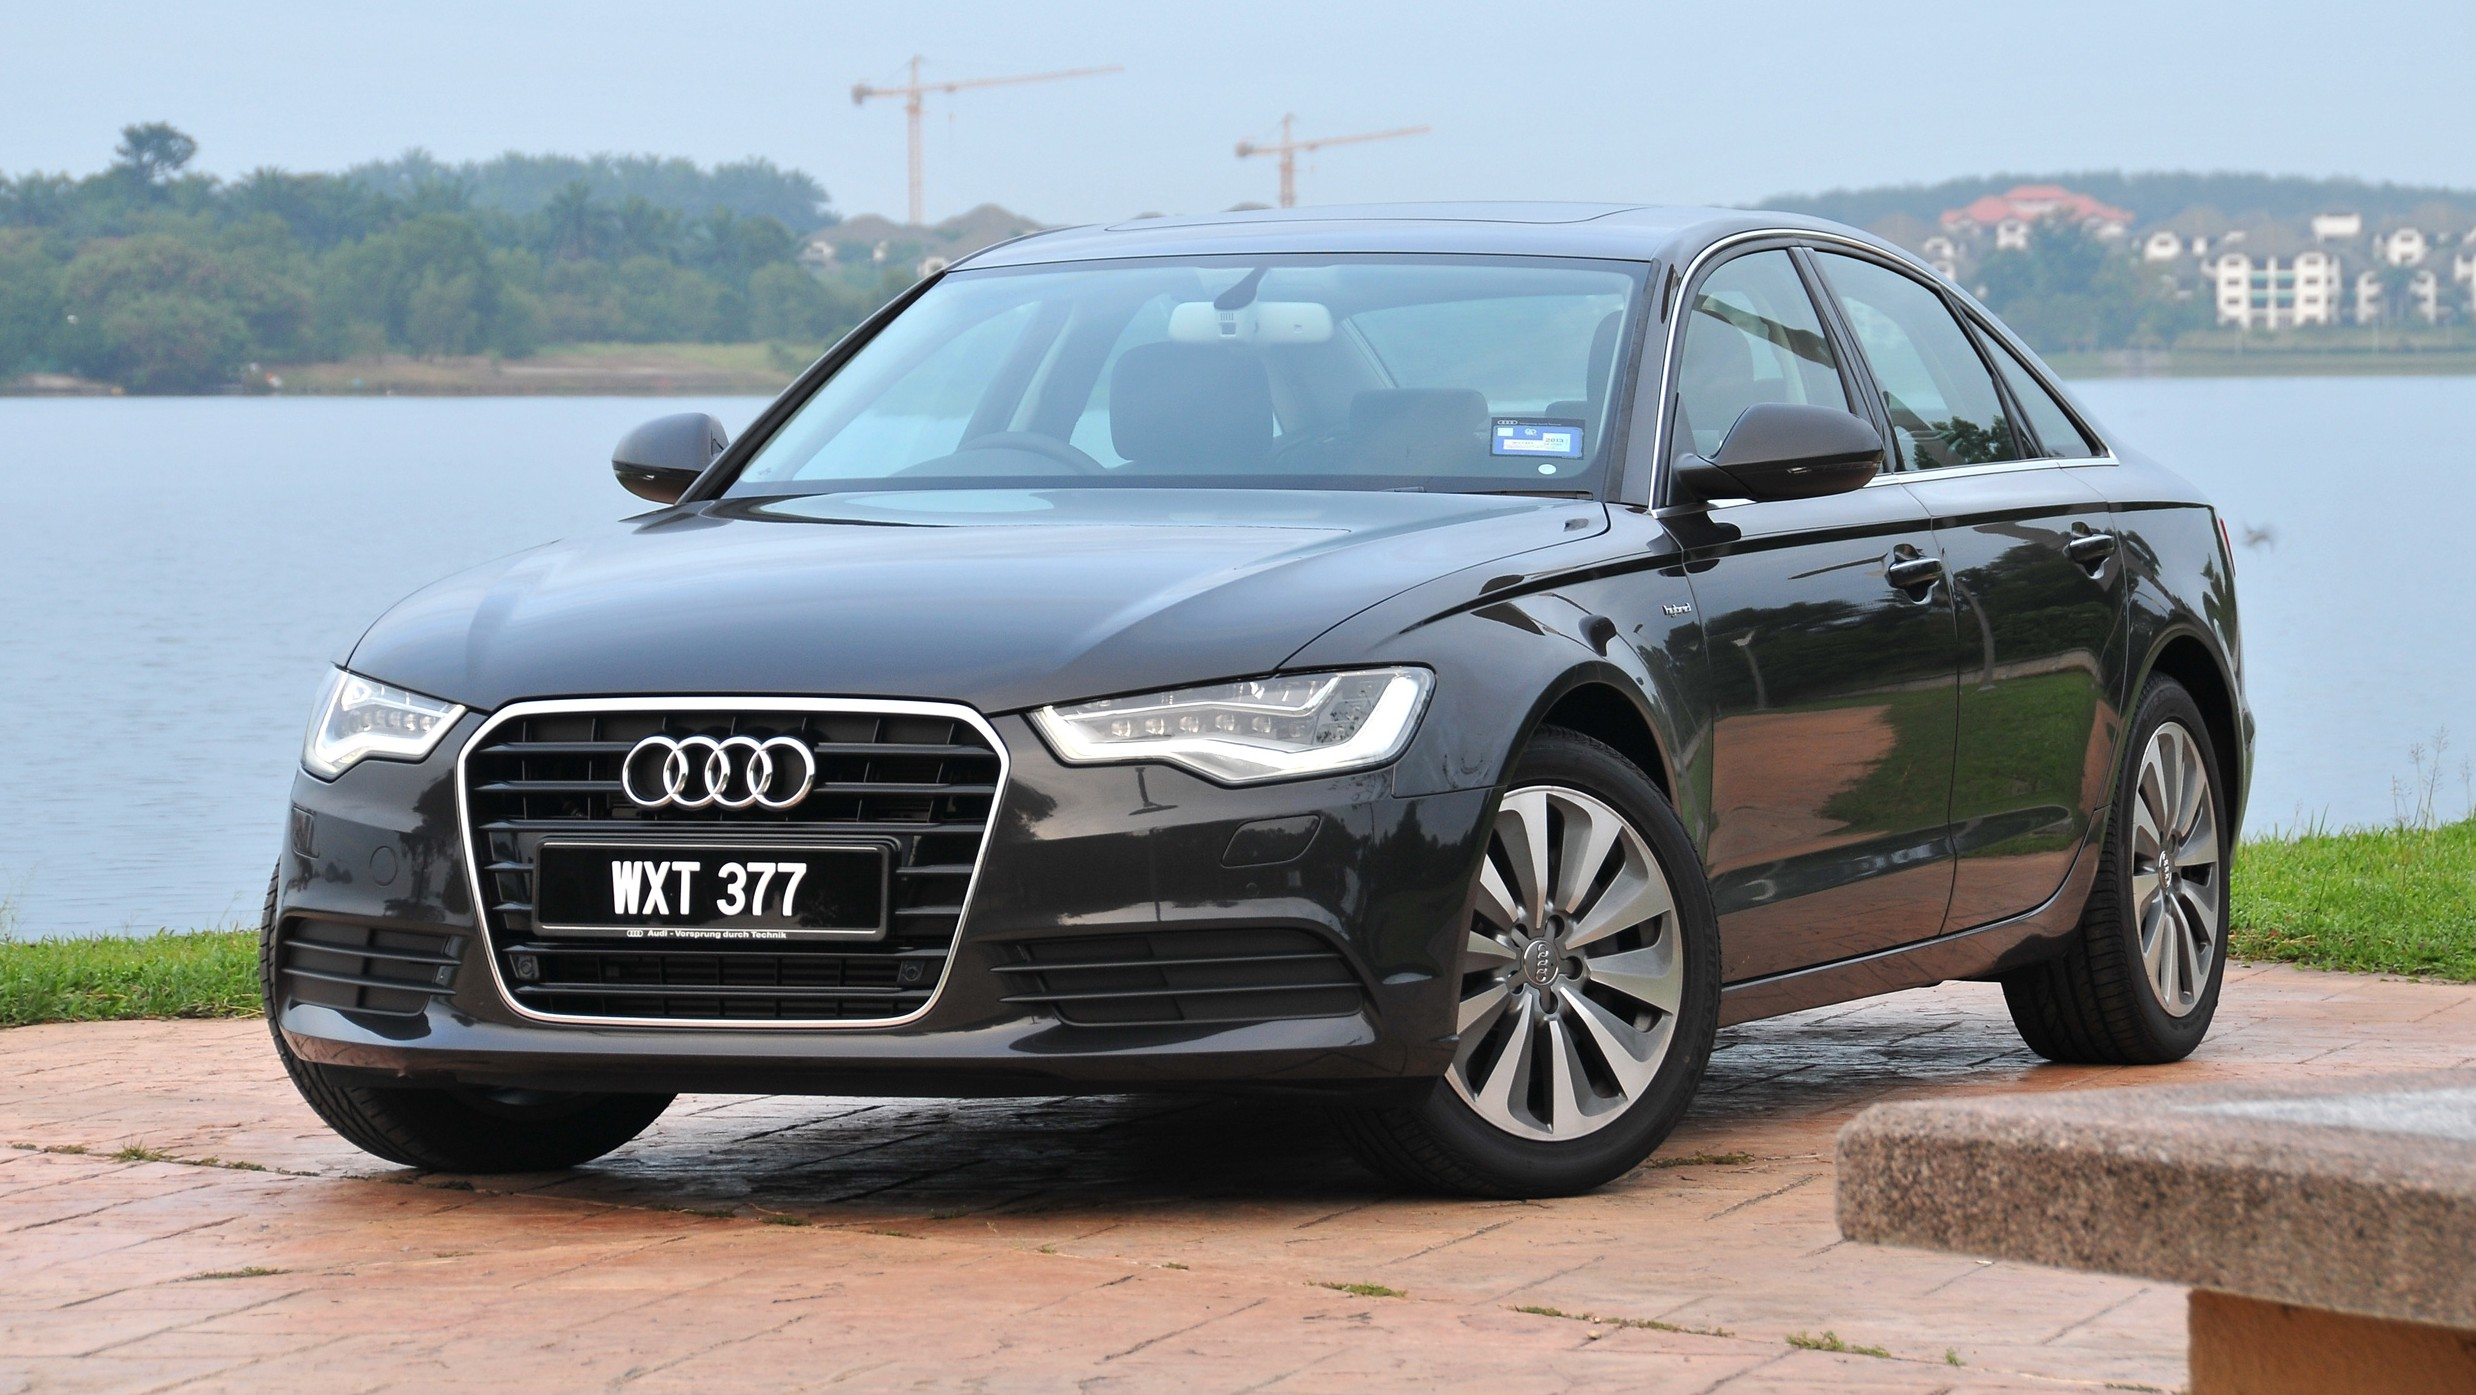 Audi A6 Hybrid now with BOSE sound system option Image 182795